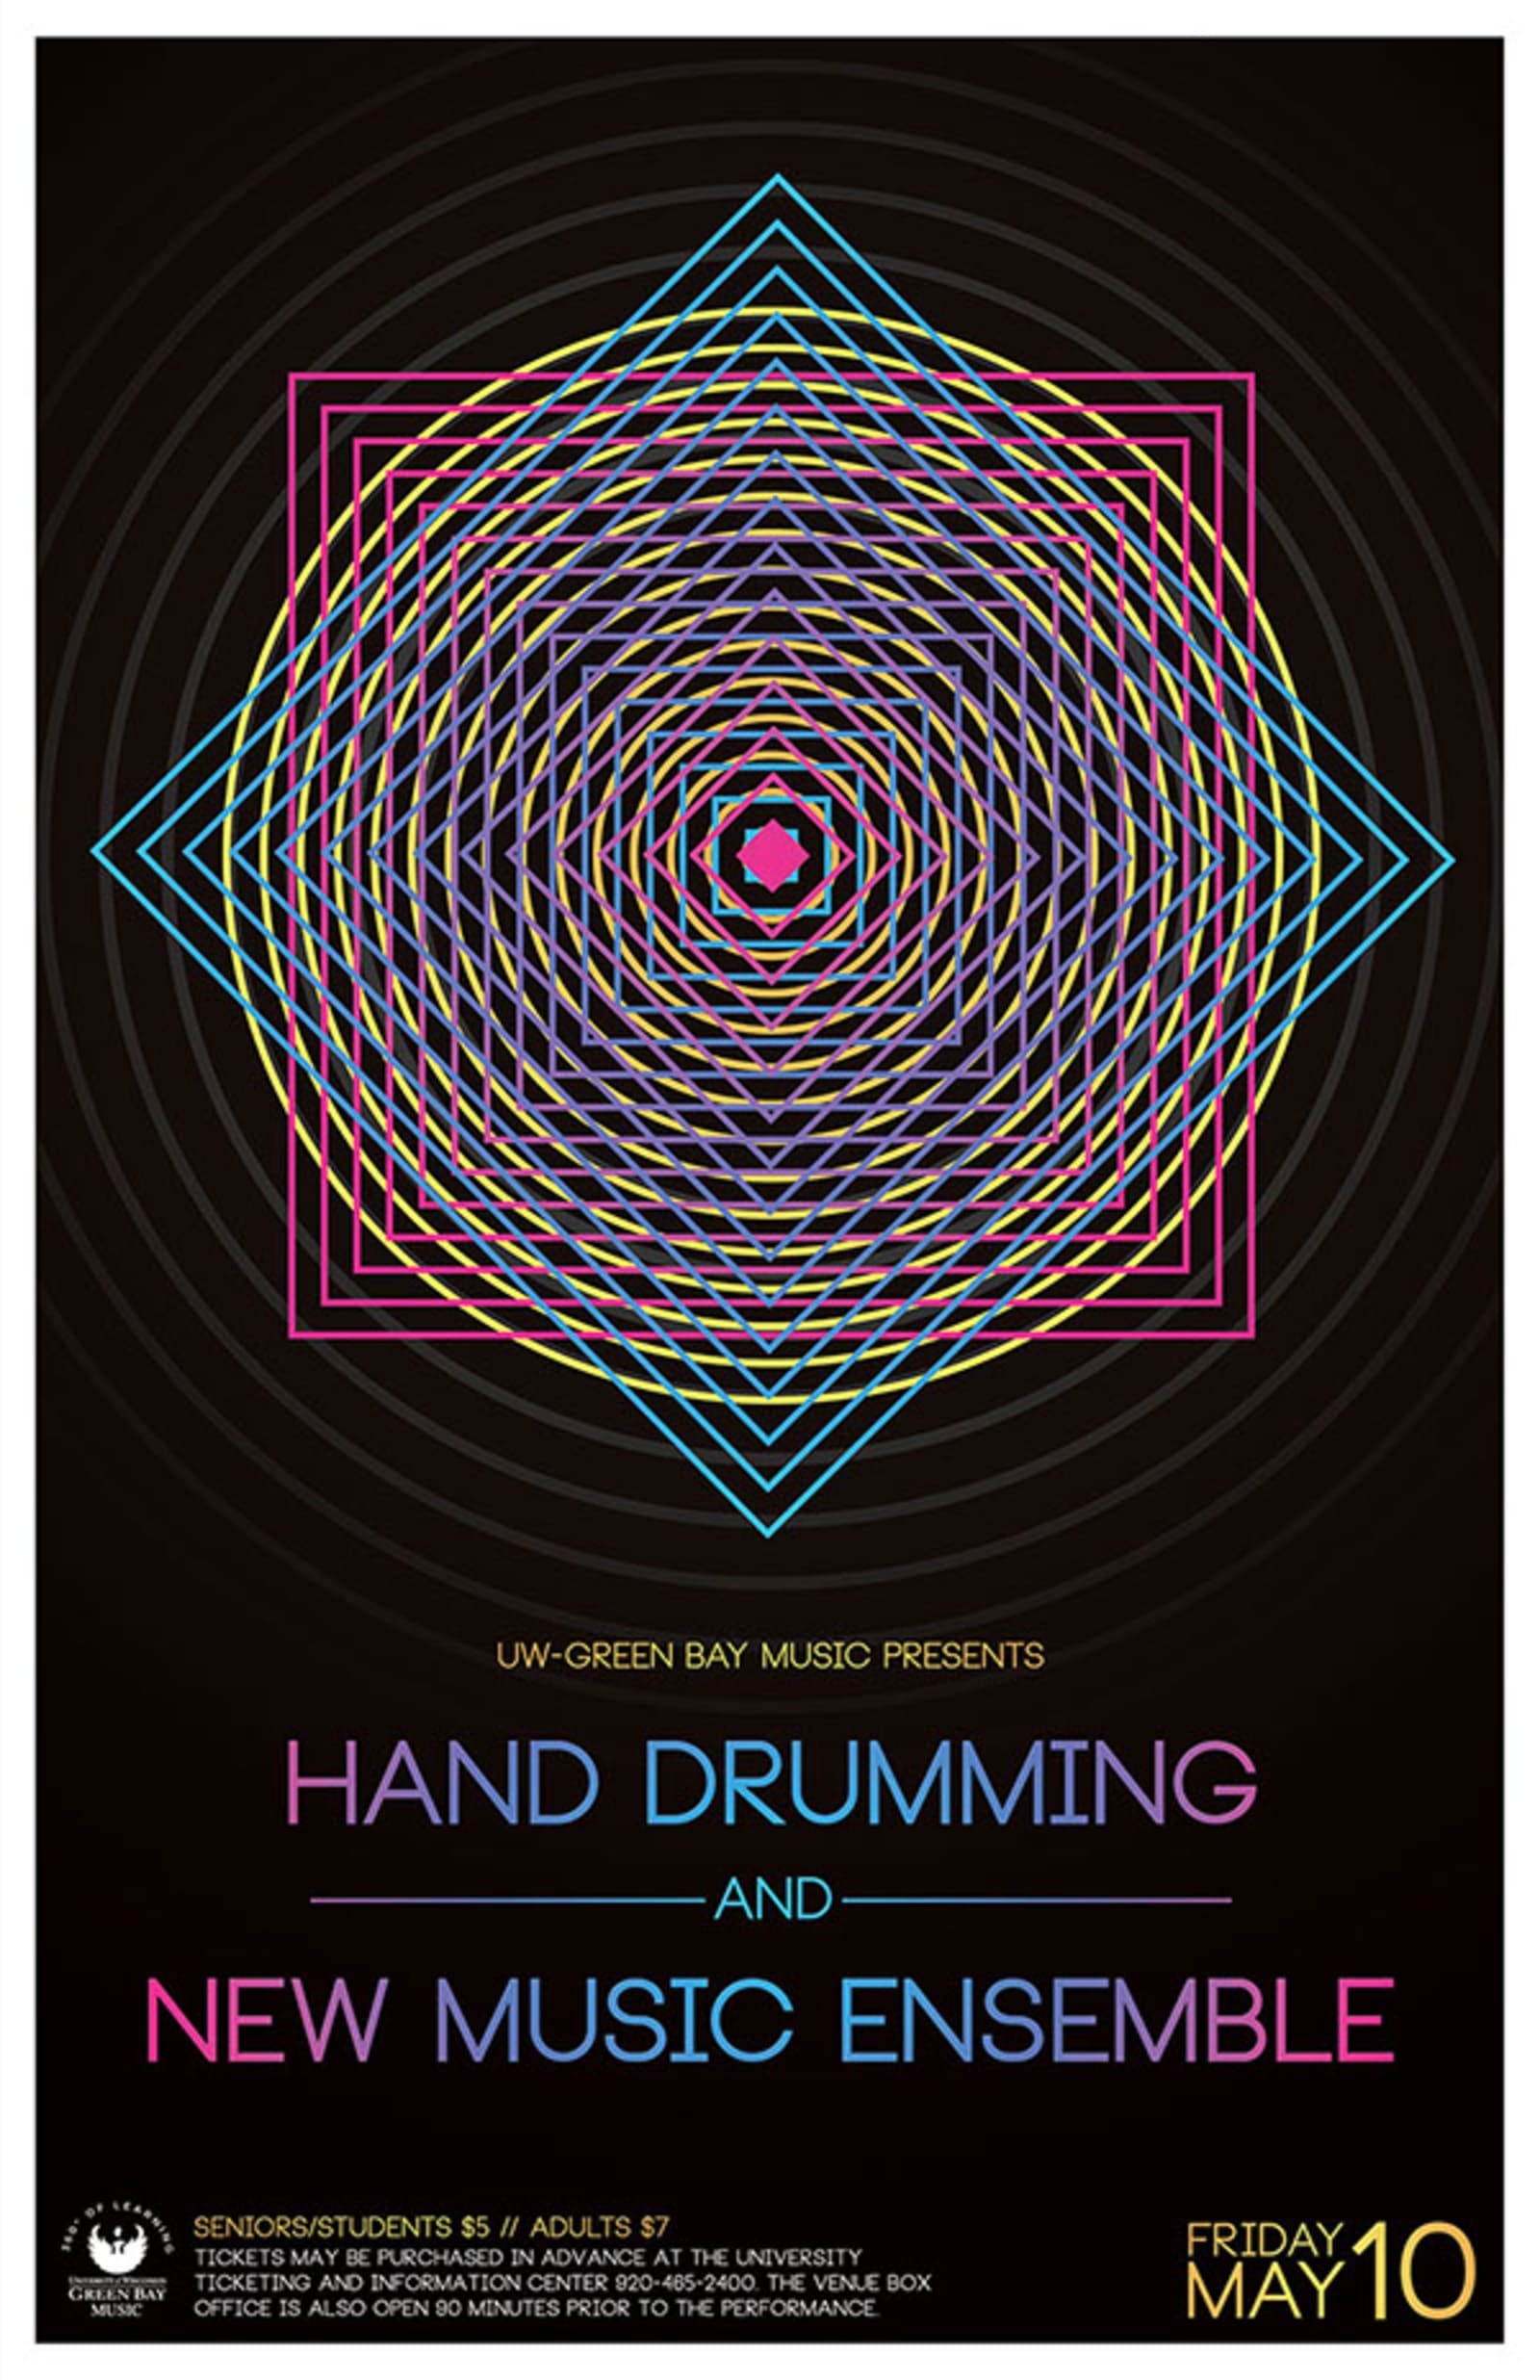 Hand Drumming and New Music Ensemble Color Abstract Poster